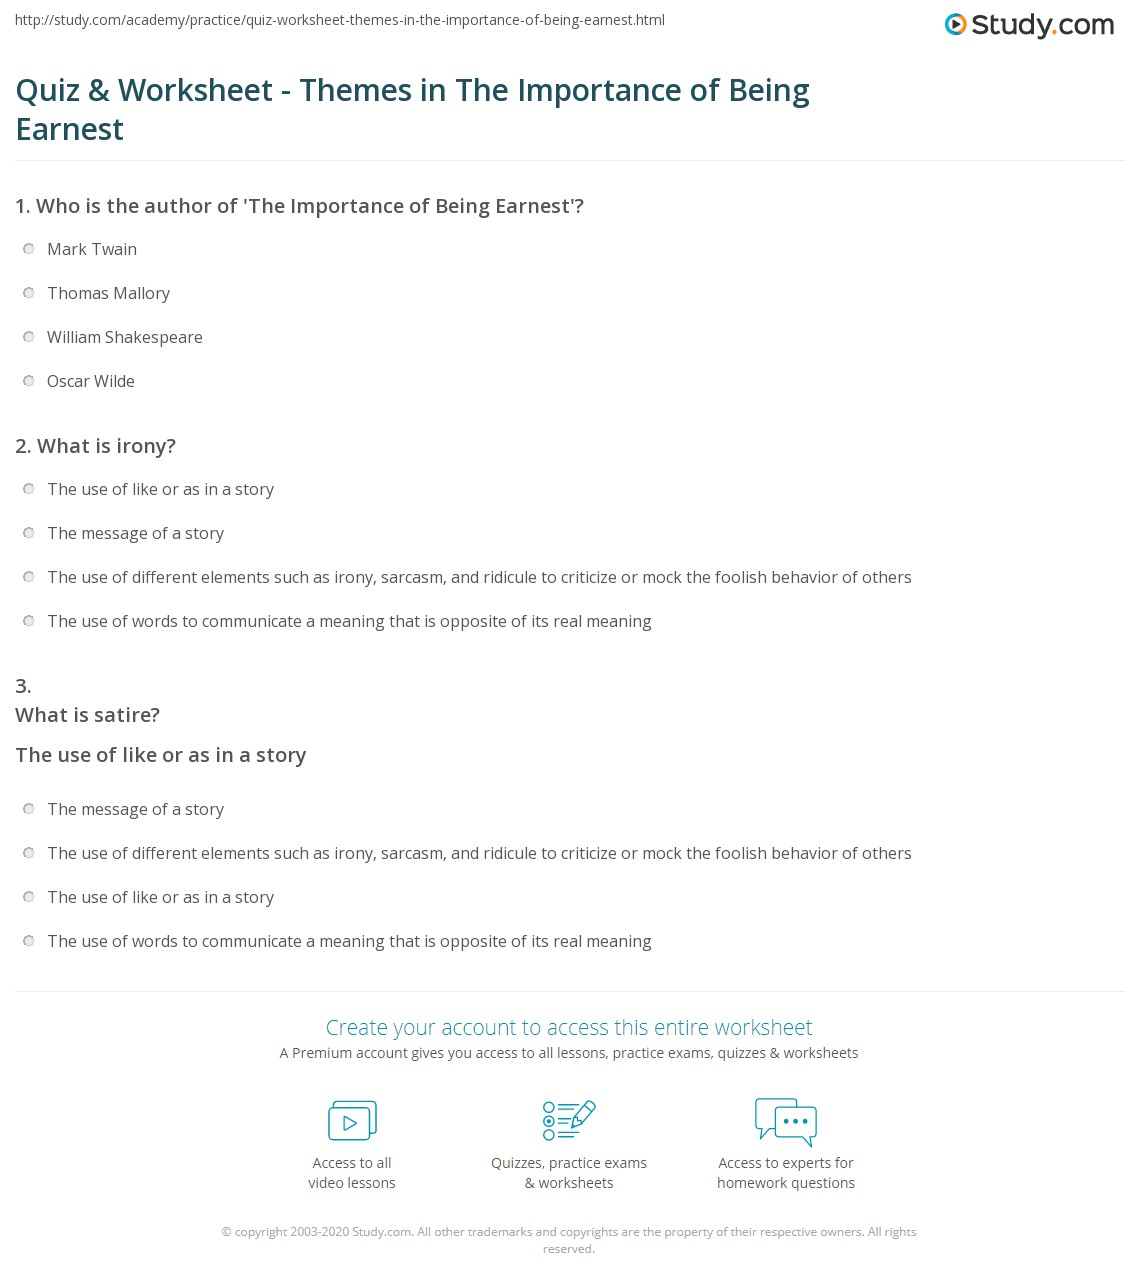 essay on the importance of being earnest Topic : the act of bunburying is the central to the theme of the play discuss why with reference to quotes within the text and the era the play was written in.